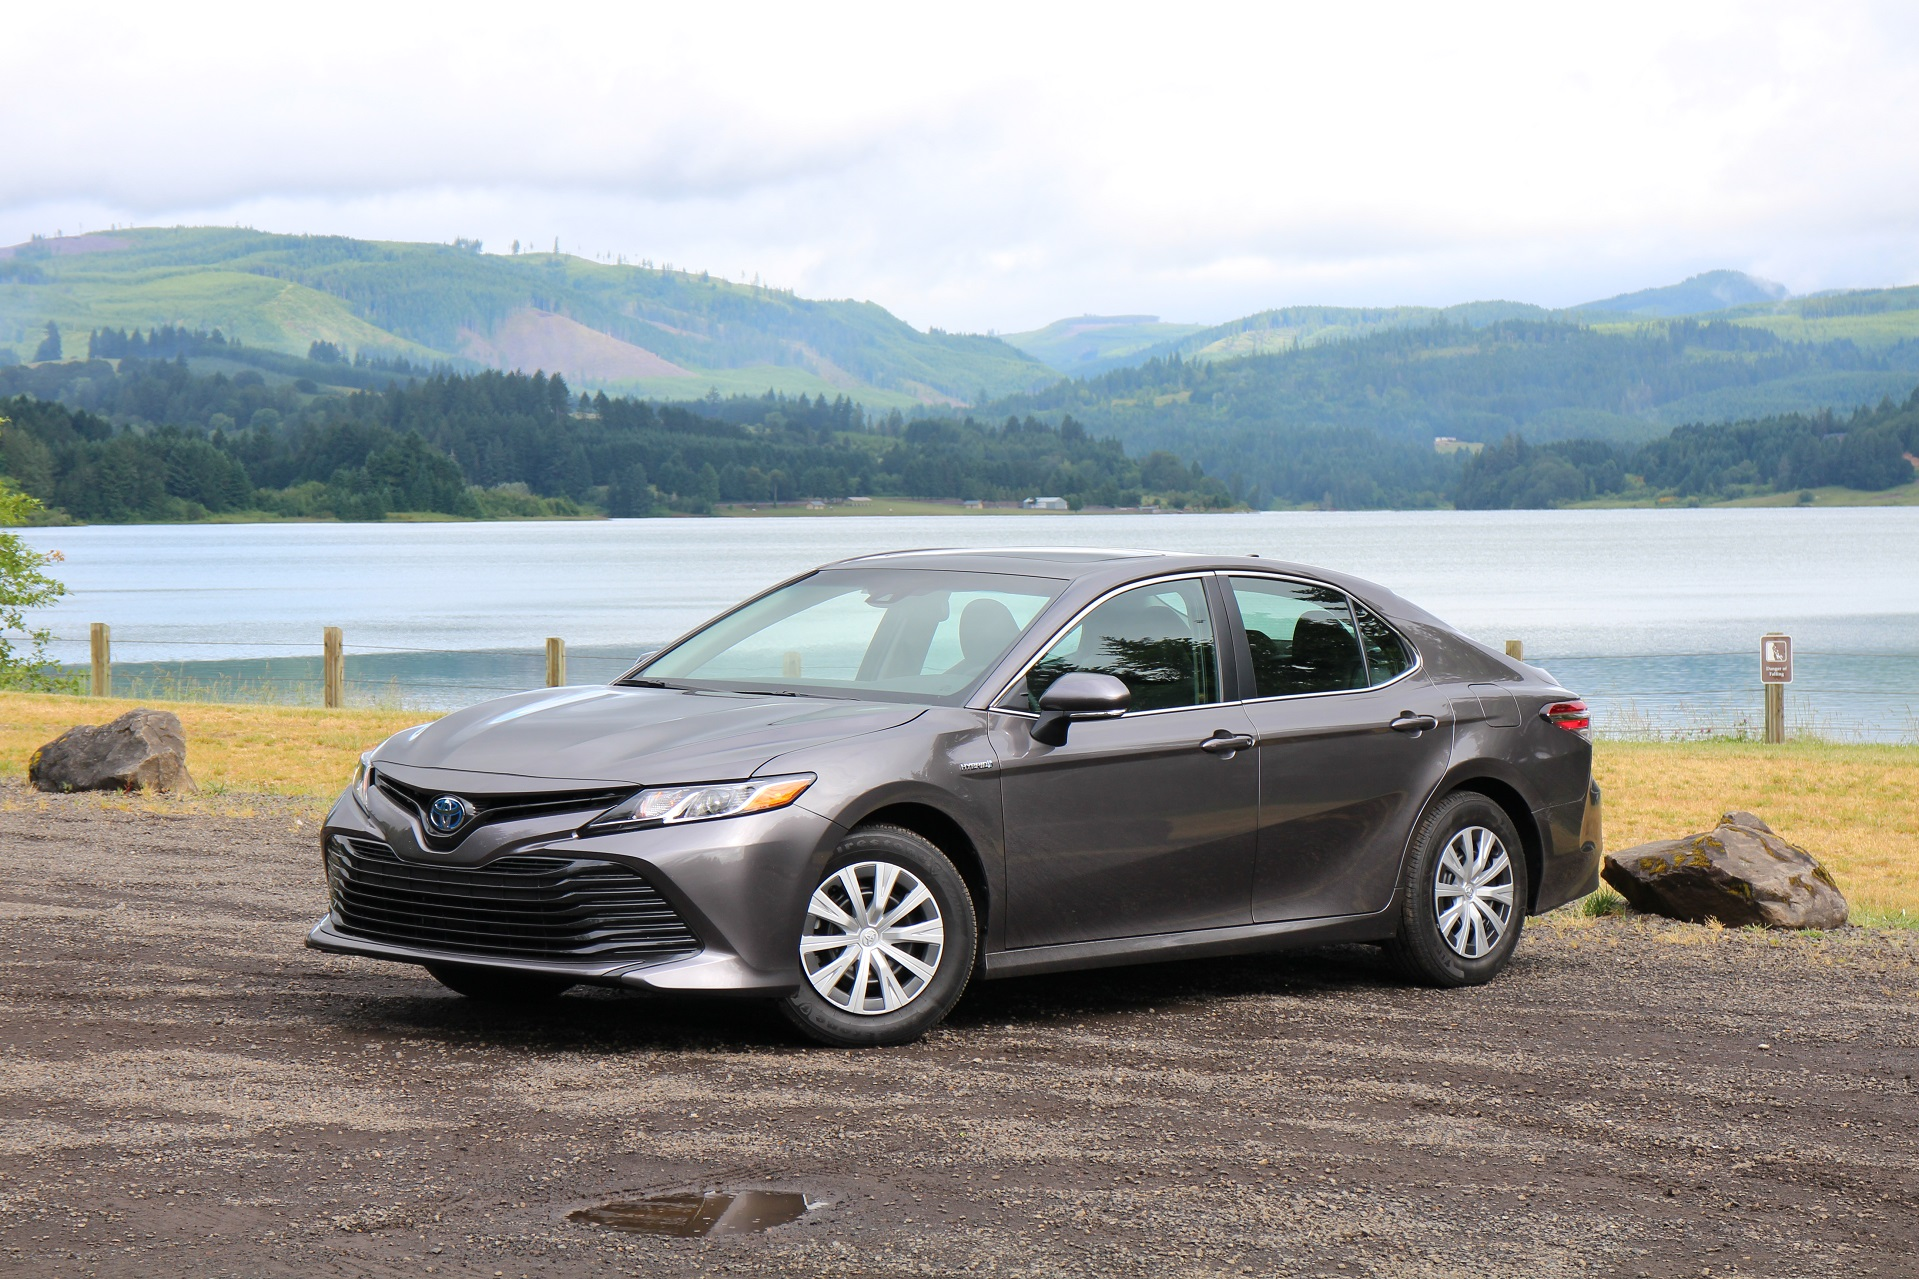 all new camry vs accord grand avanza type g 2018 best deals on hybrid electric fuel efficient cars for